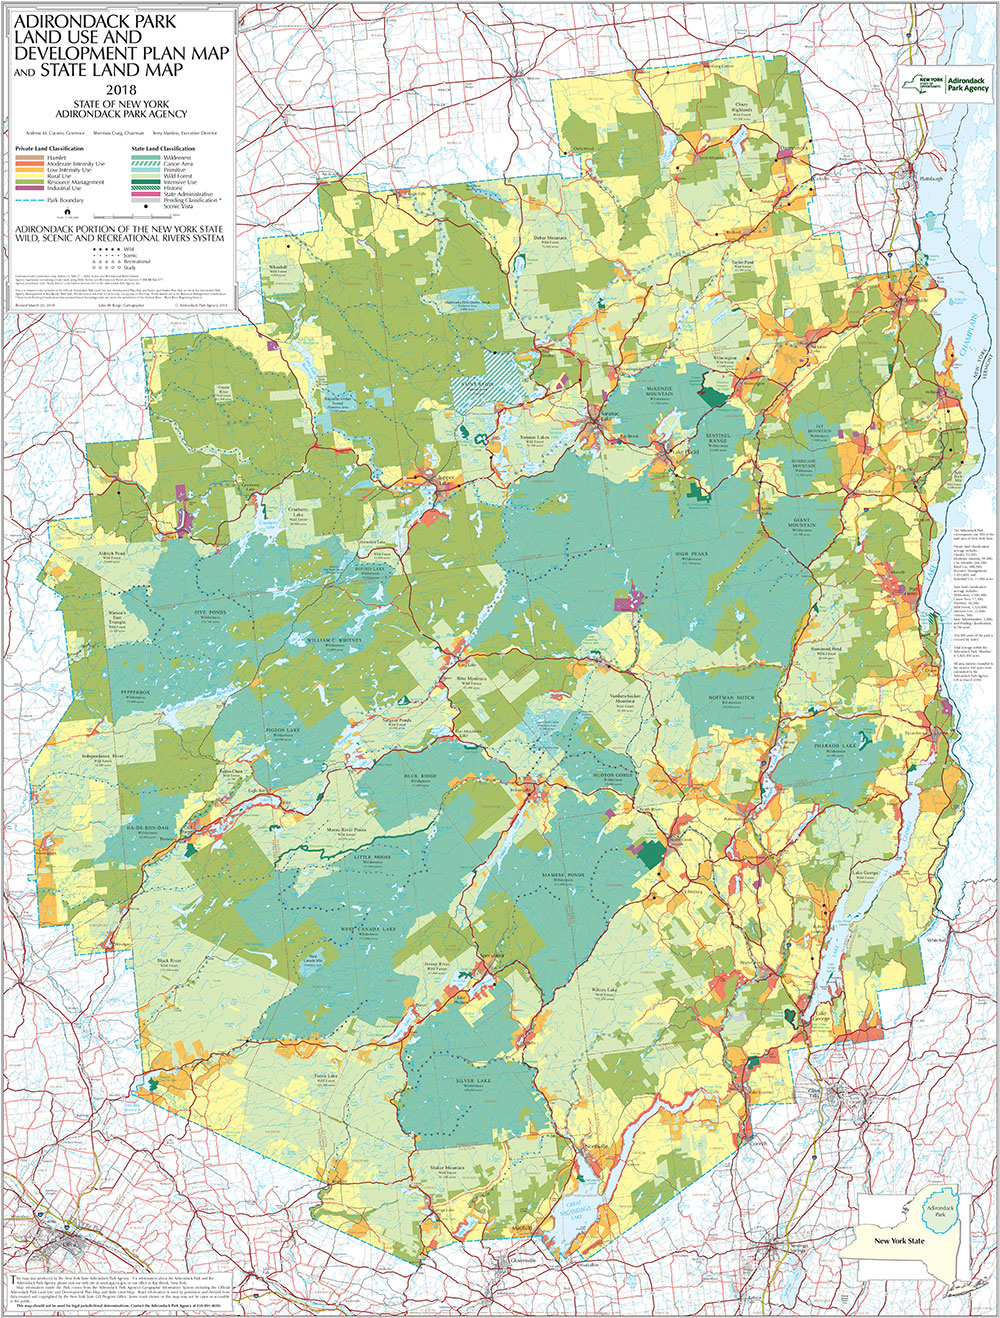 Map Of Adirondacks Adirondack Park Agency Maps and GIS